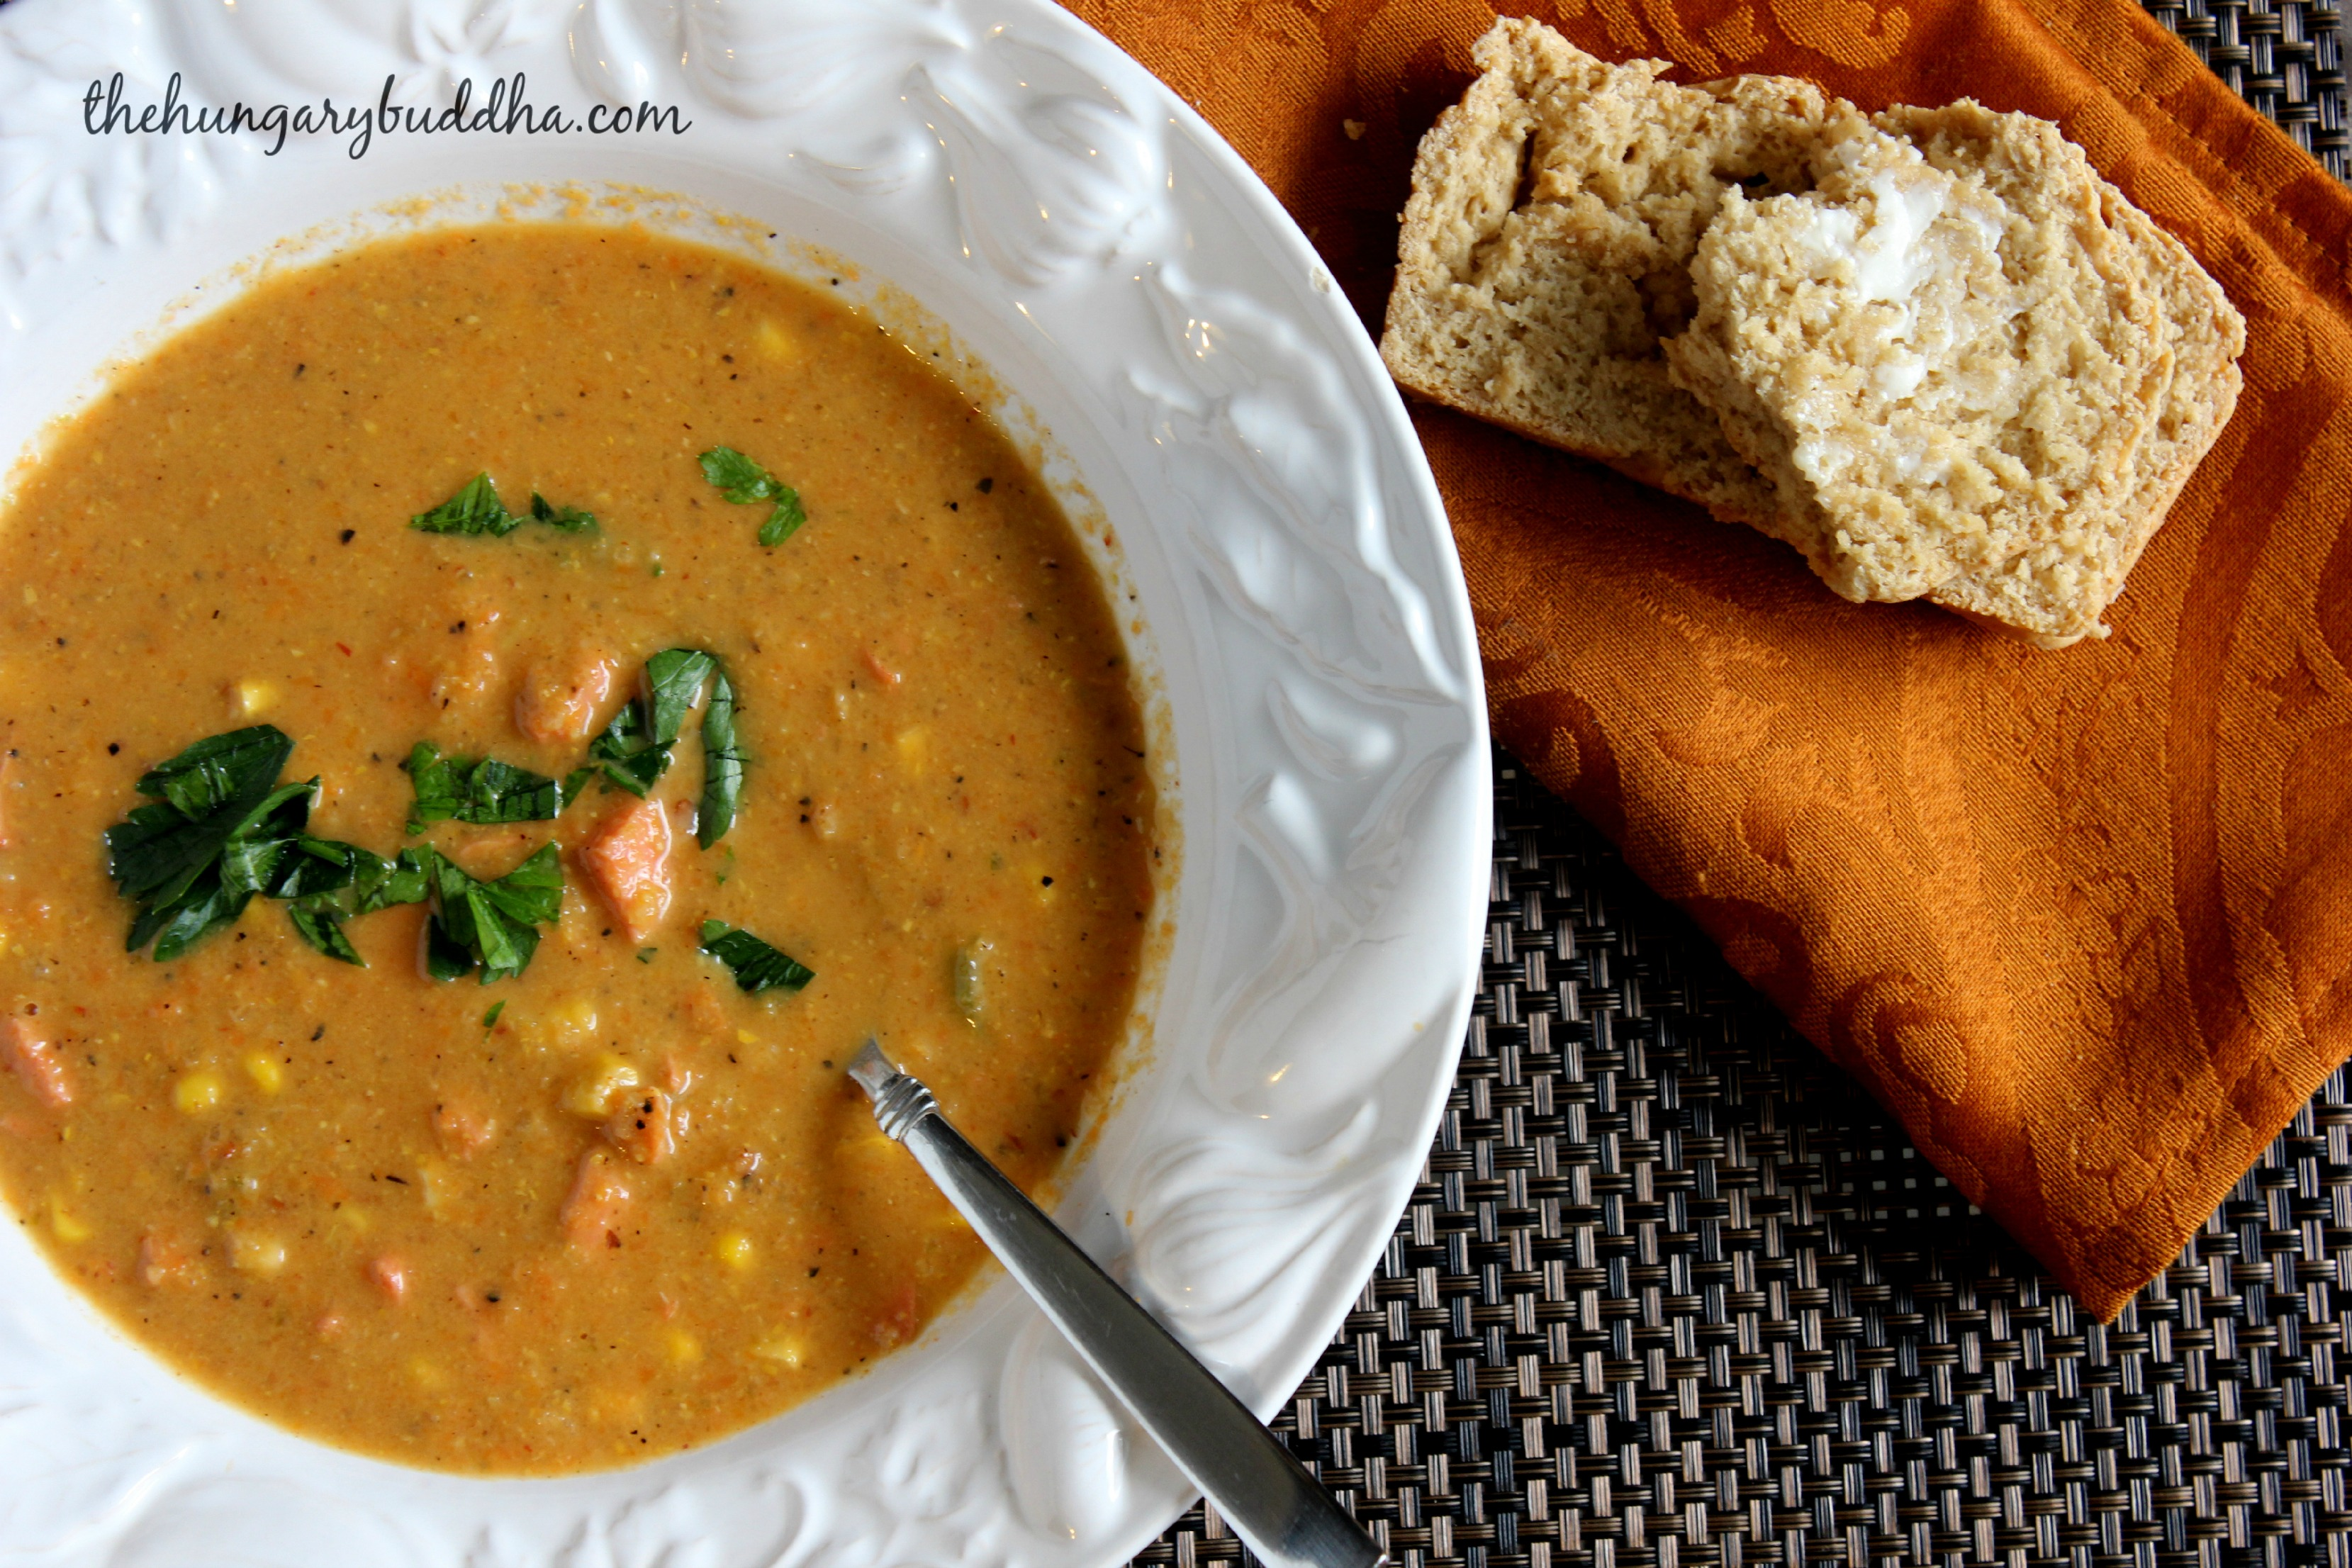 Saturday Supper: Alaskan Beer Bread and Spicy Smoked Salmon Chowder